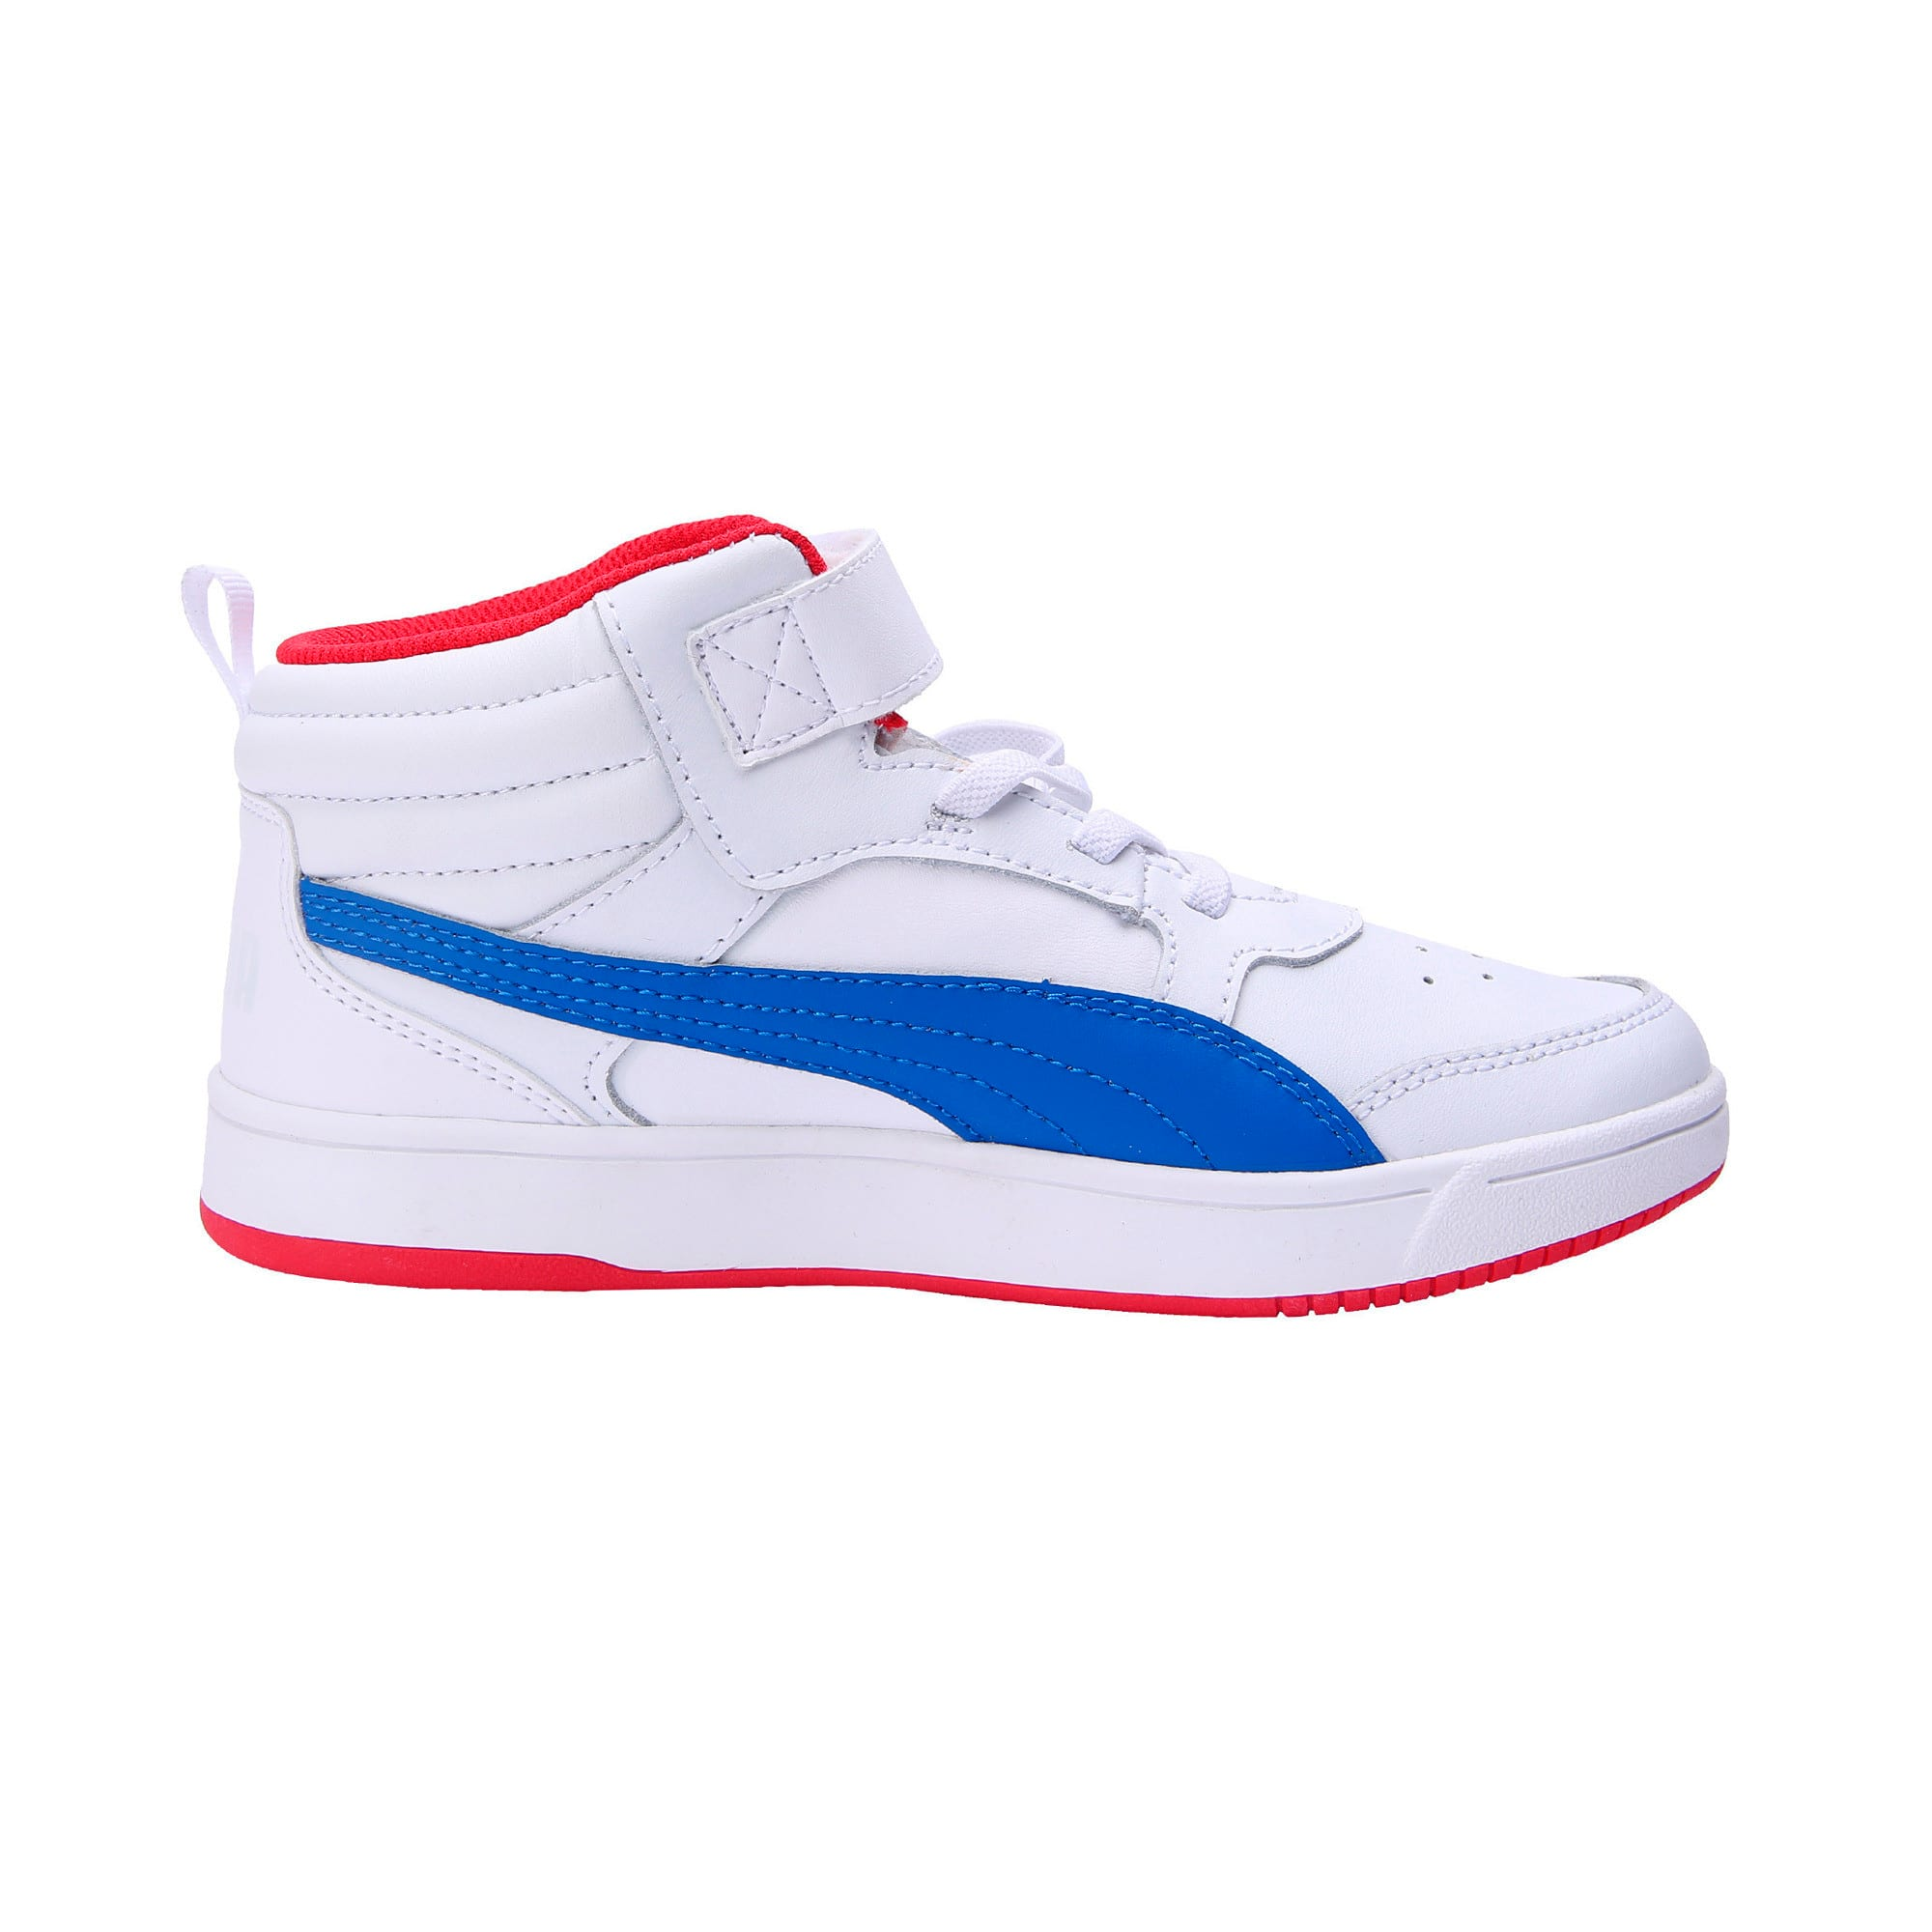 Thumbnail 5 of PumaReboundStreet2 L V PS, White-Strng Blue-Rbbn Red, medium-IND